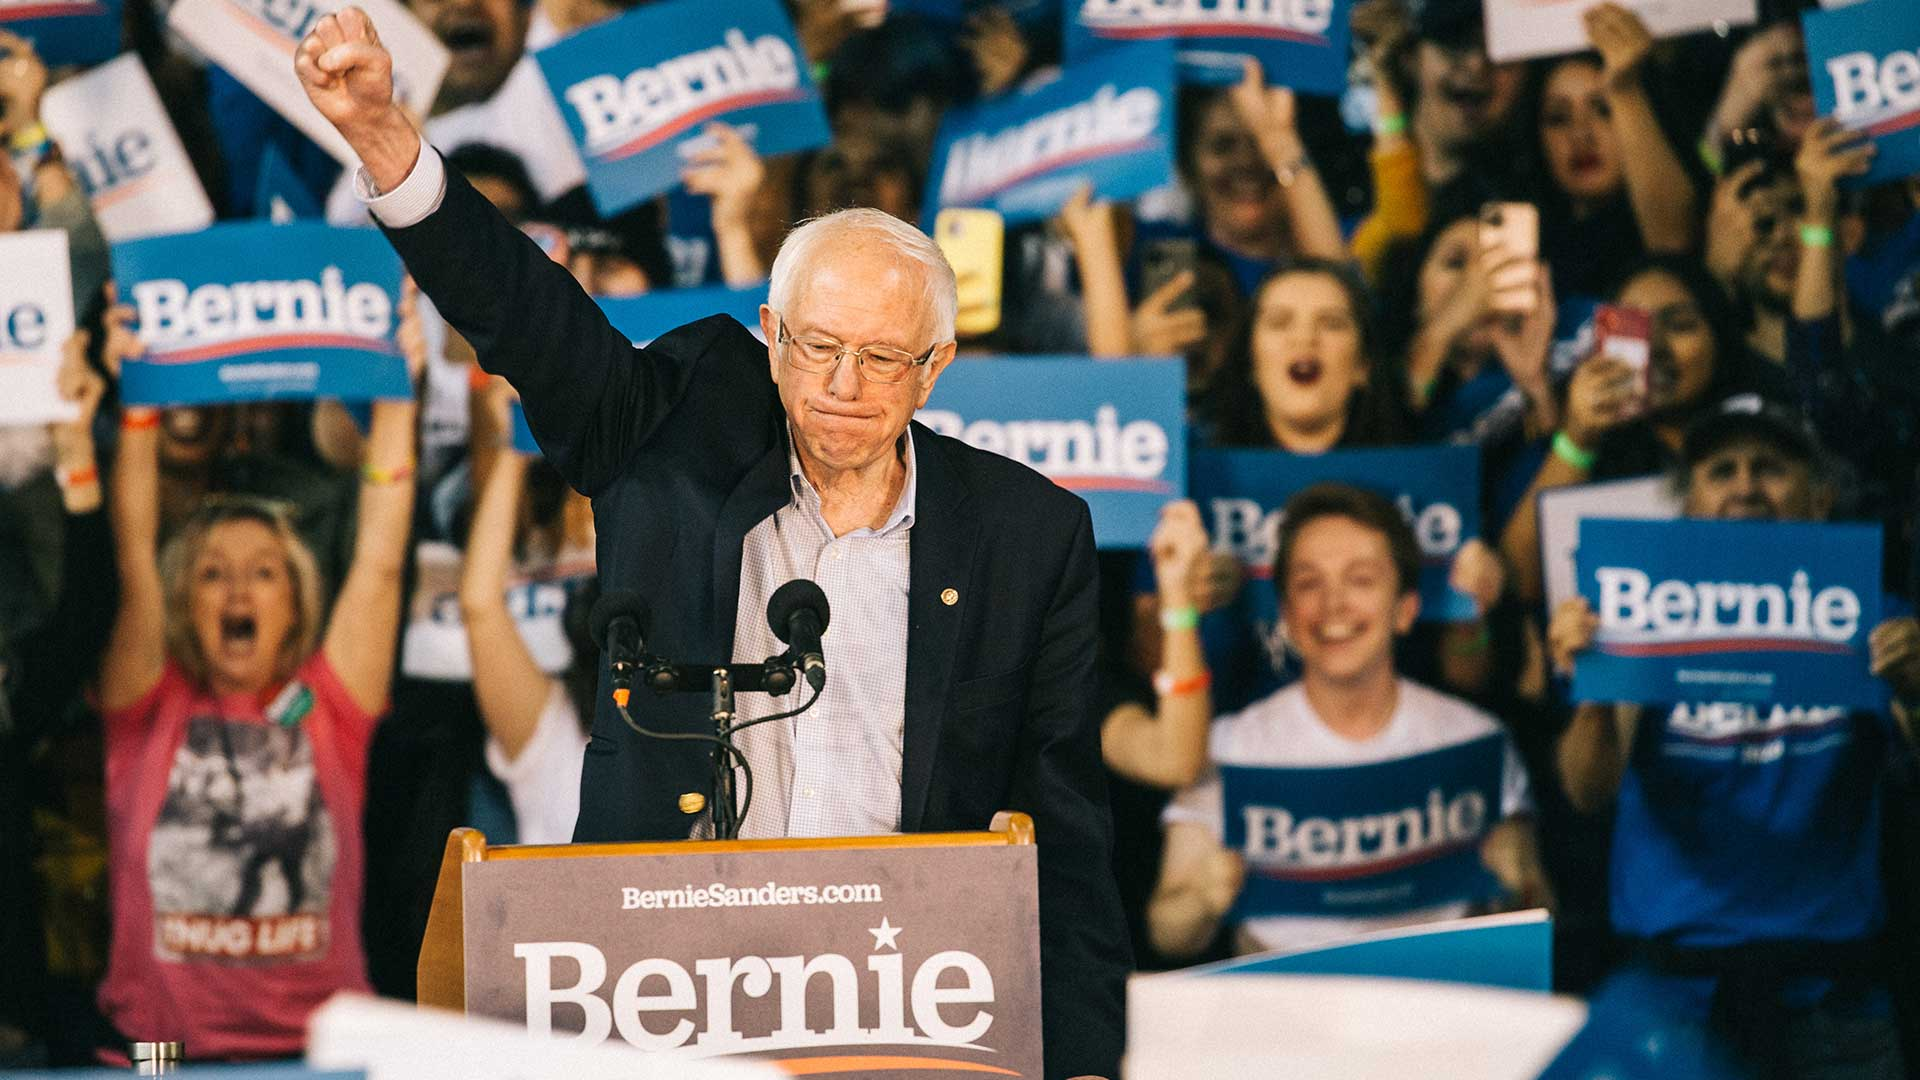 Sen. Bernie Sanders took several swipes at his rival for the Democratic nomination for president, former Vice President Joe Biden, noting that Biden supported the Iraq War and the North American Free Trade Agreement.